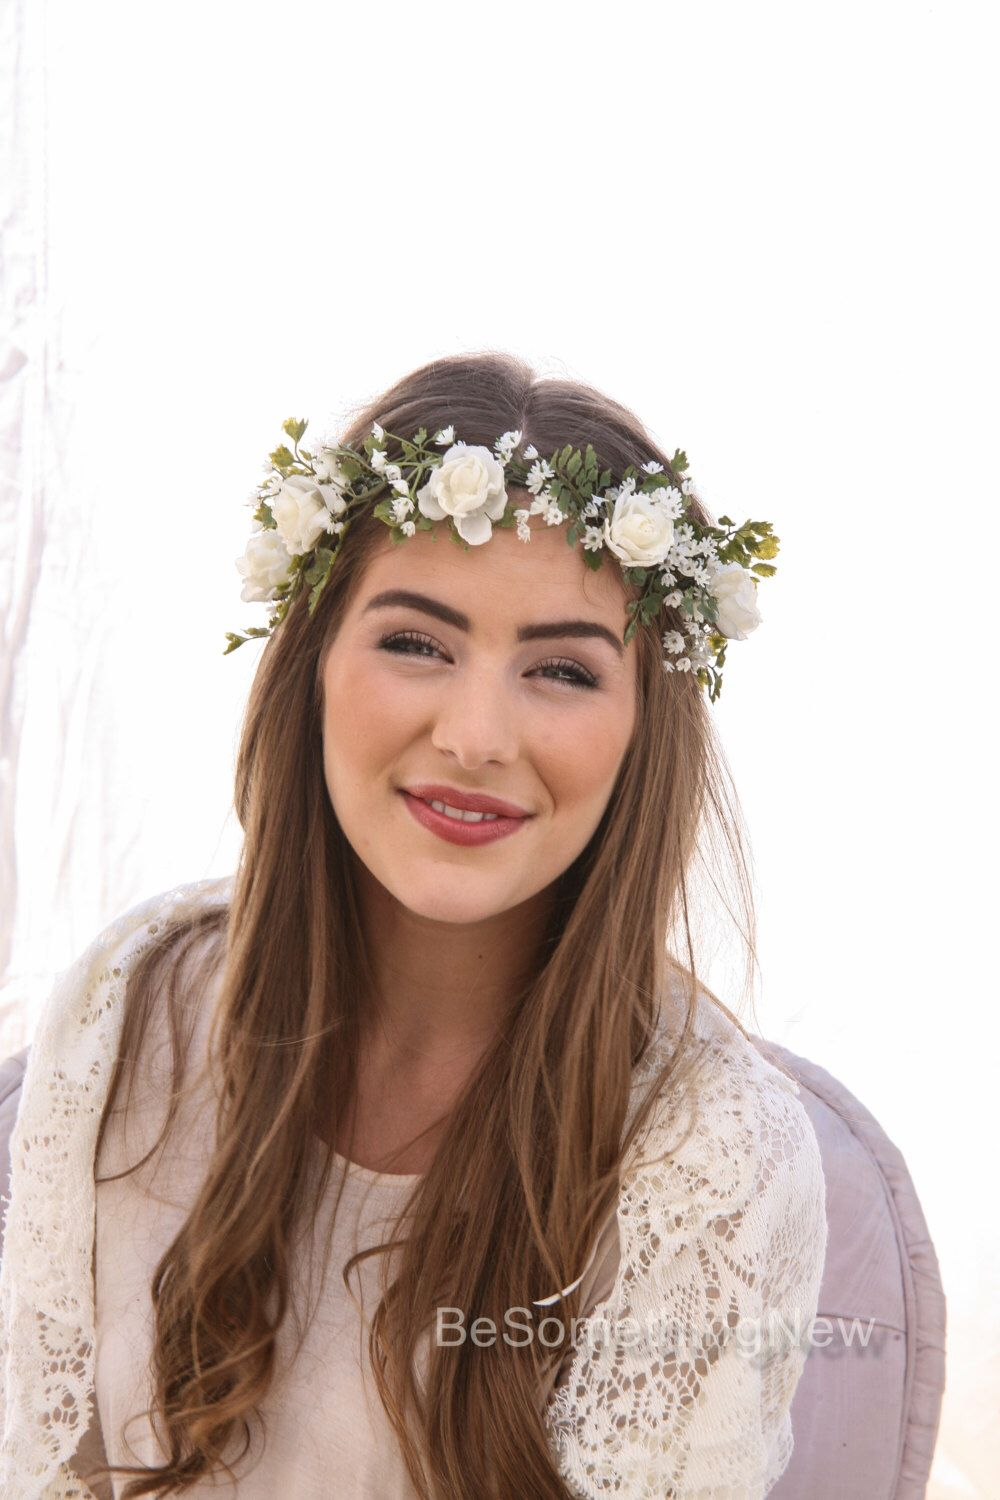 Boho bridal flower crown with veil pelican by pelicanrosebride boho bridal flower crown with veil pelican by pelicanrosebride wedding things pinterest bridal flowers flower crowns and veil dhlflorist Images